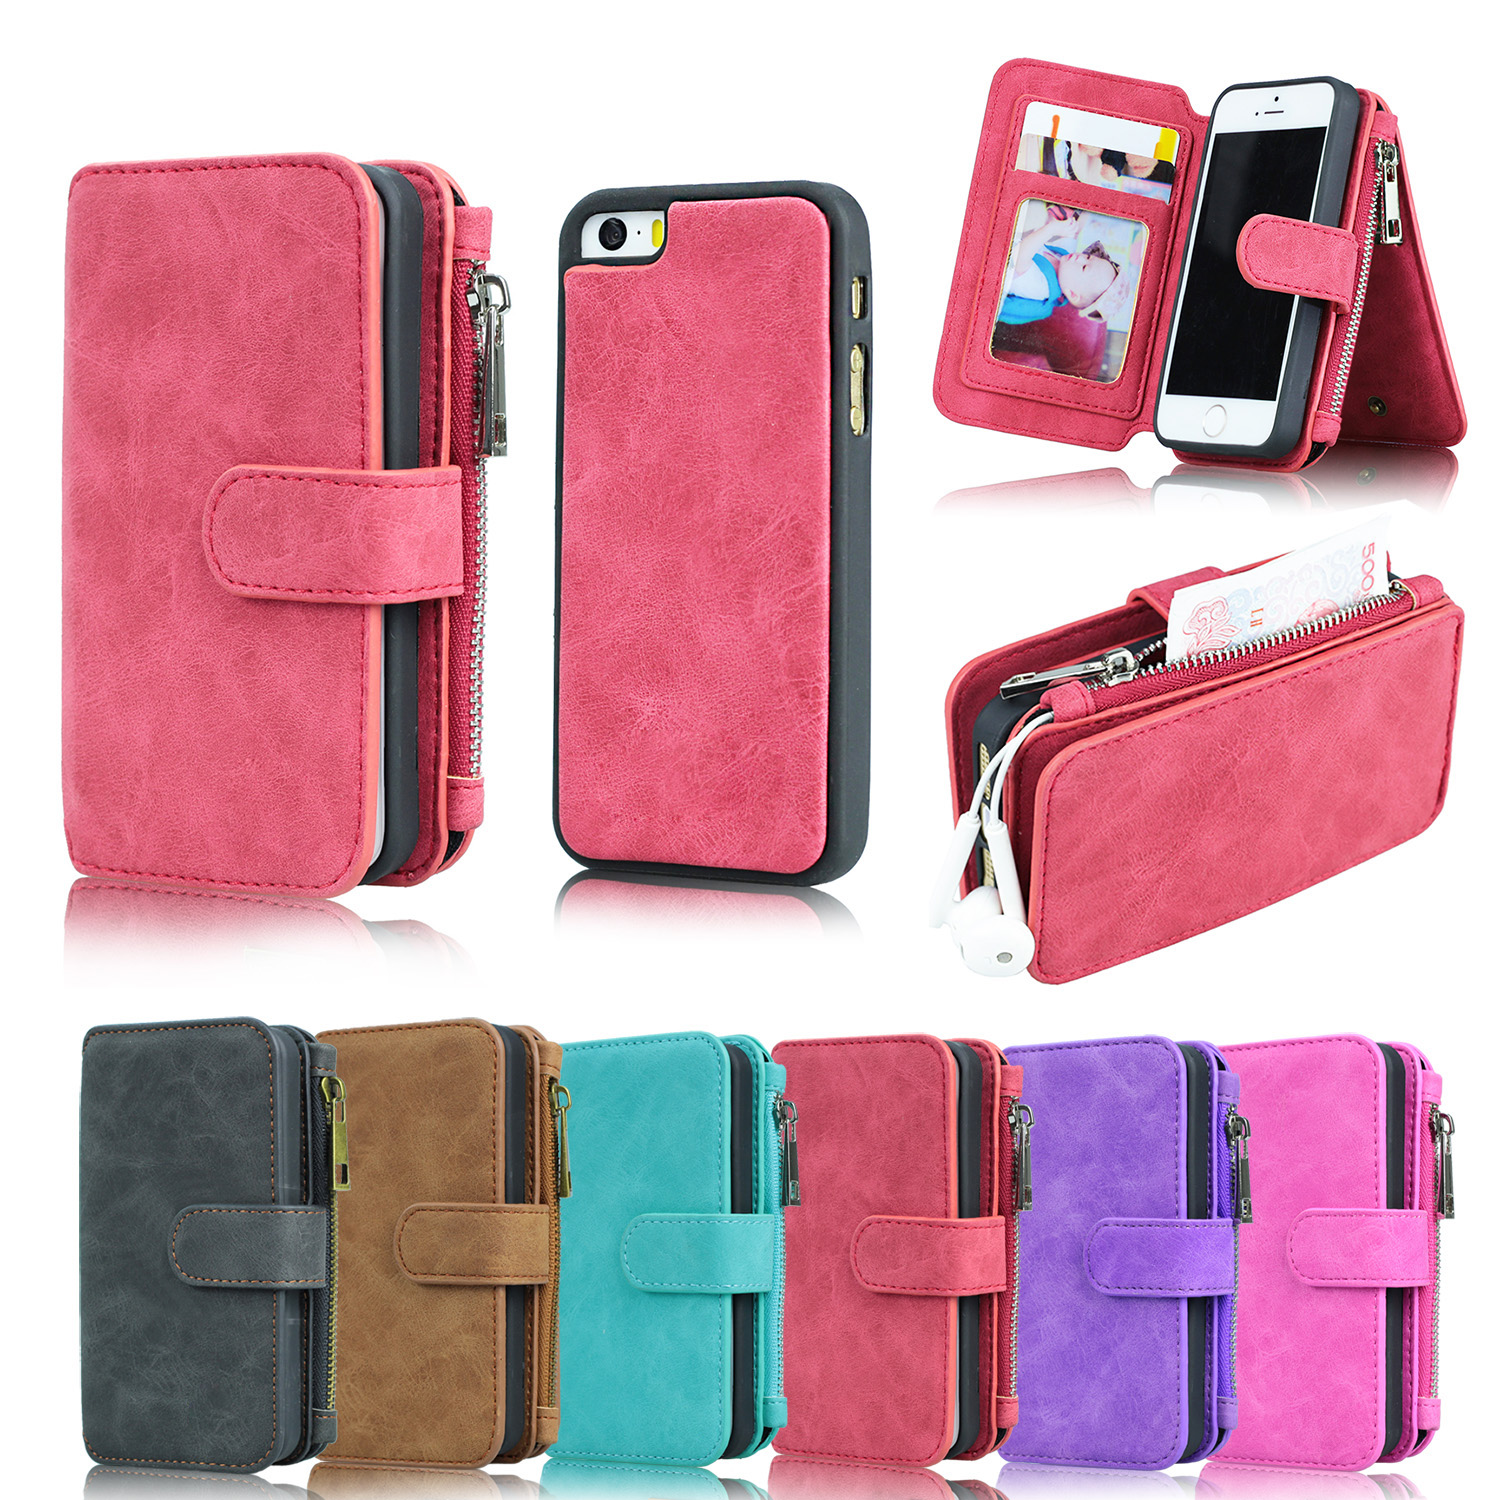 new arrival 62e8f 40bdd US $14.99 |Aliexpress.com : Buy Multifunctional Zipper Wallet Case for  iPhone 5 se case MEGSHI 8 credit card slot kickstand removable Mobile Phone  ...